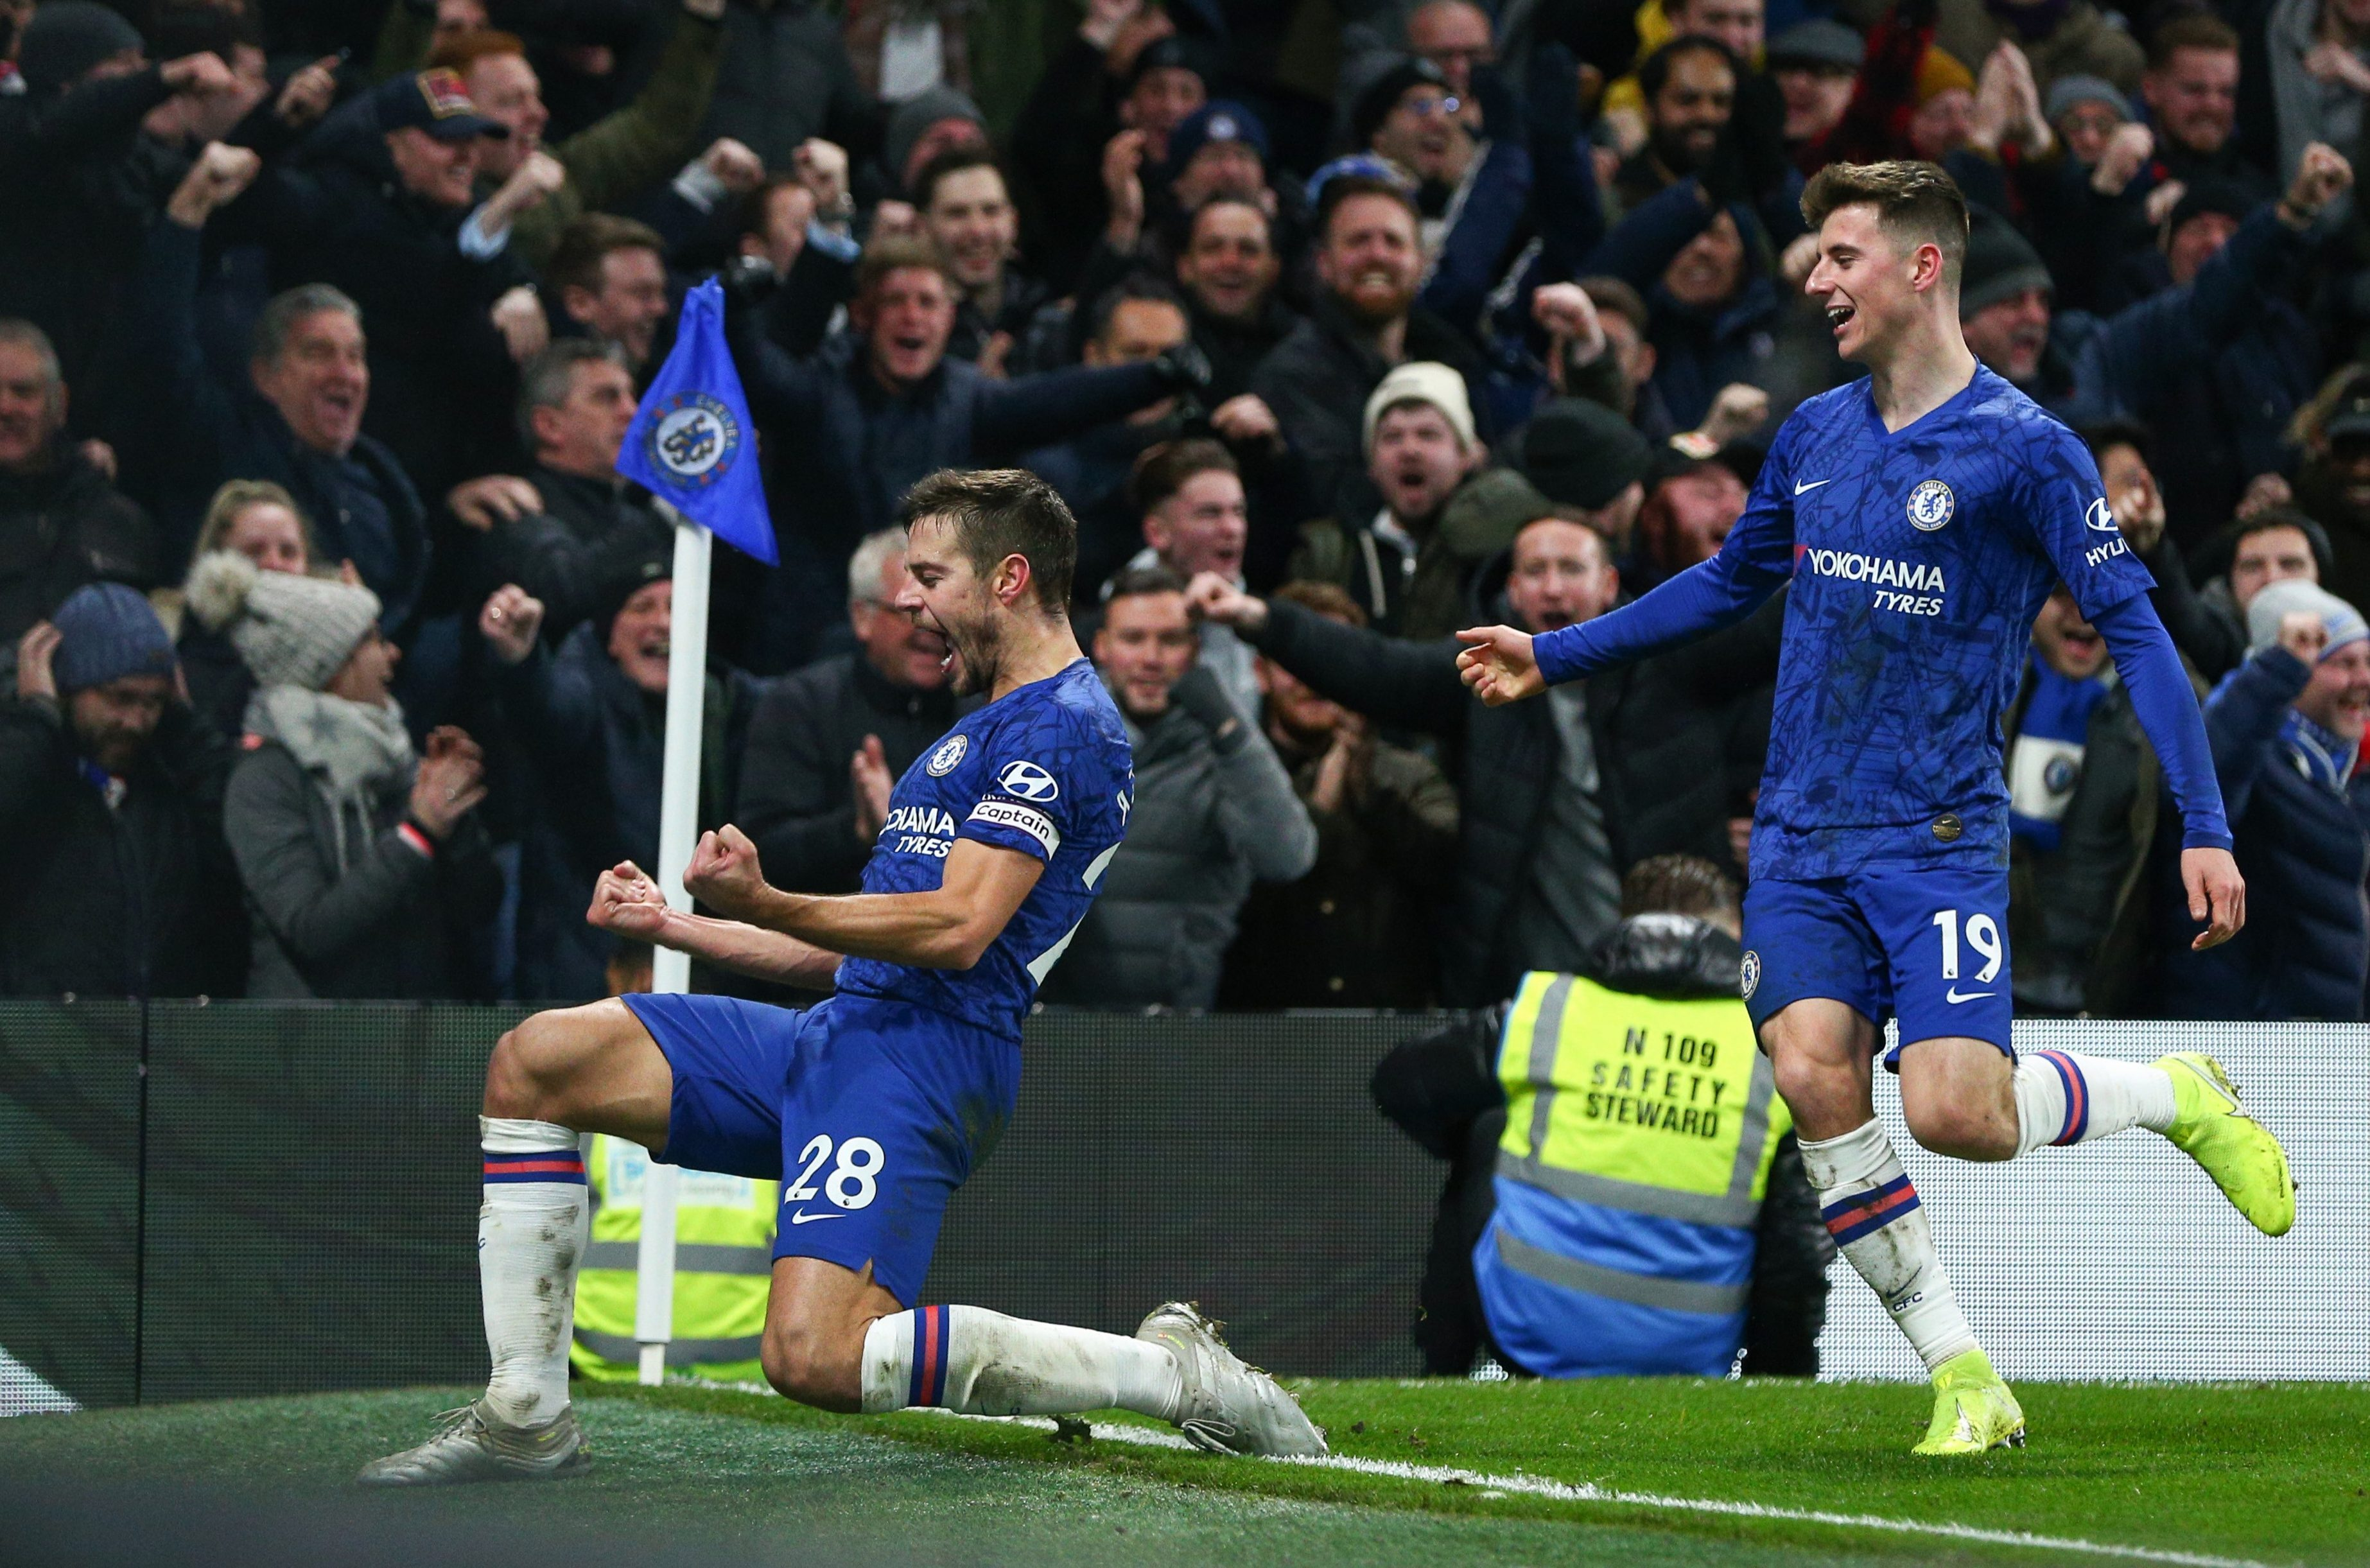 Azpilicueta must have thought he'd won the game for Chelsea with his 84th minute goal